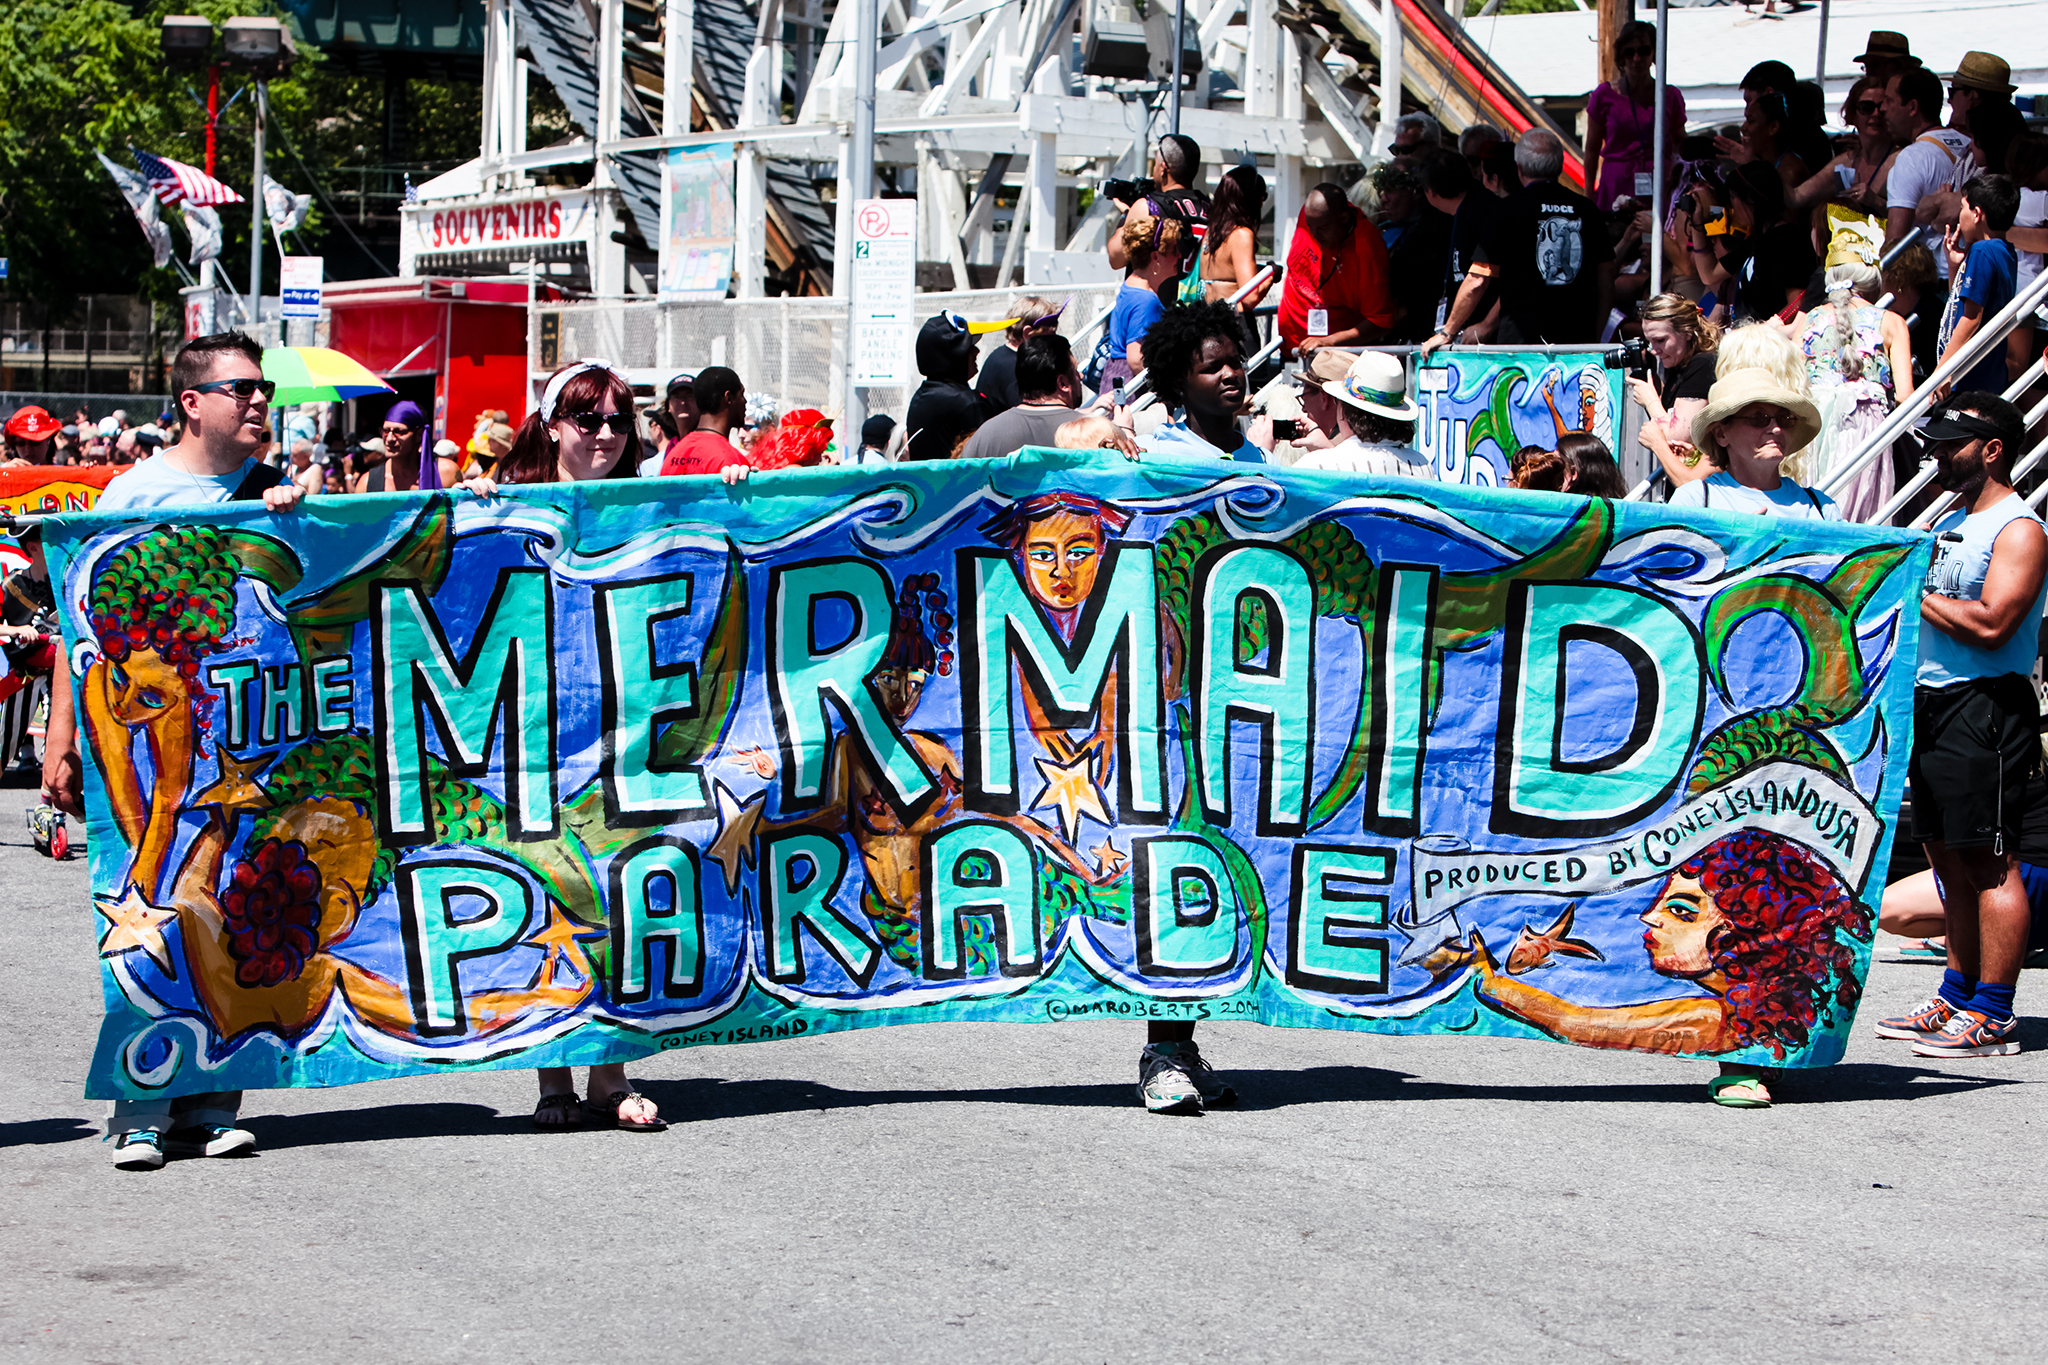 Wave your freak flag at the Mermaid Parade